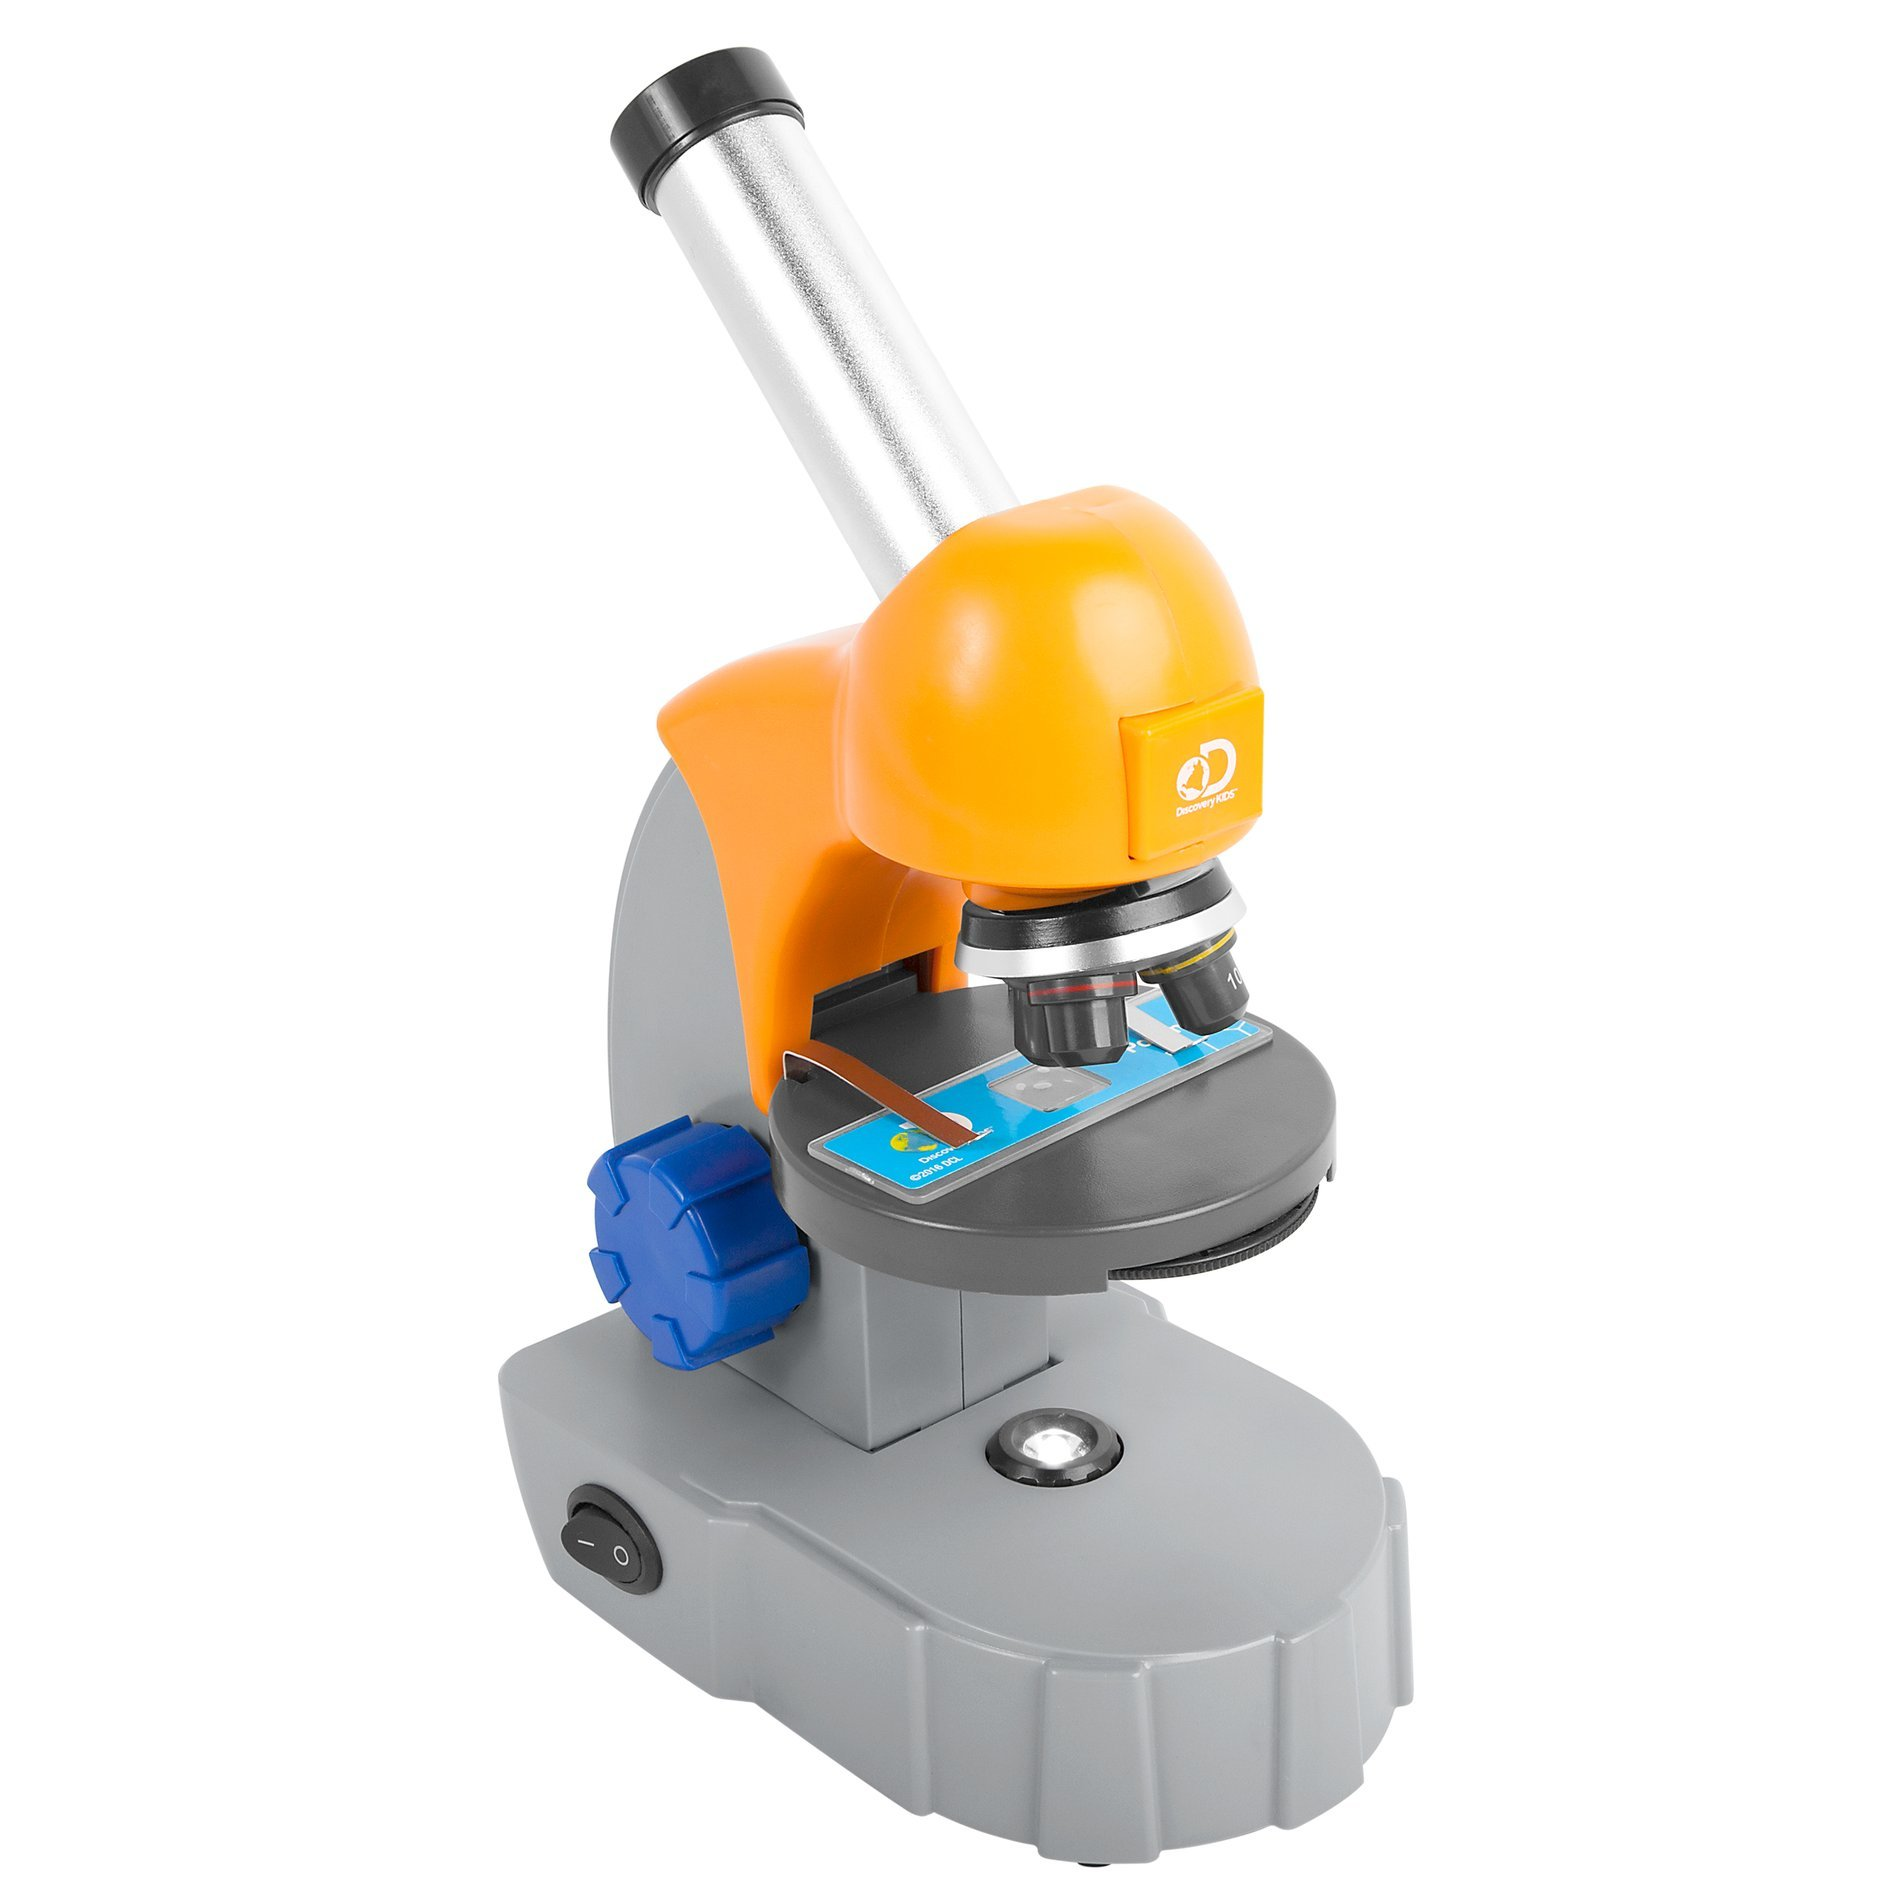 Discovery Explore Scientific 800X Advanced Microscope Toy by Discovery